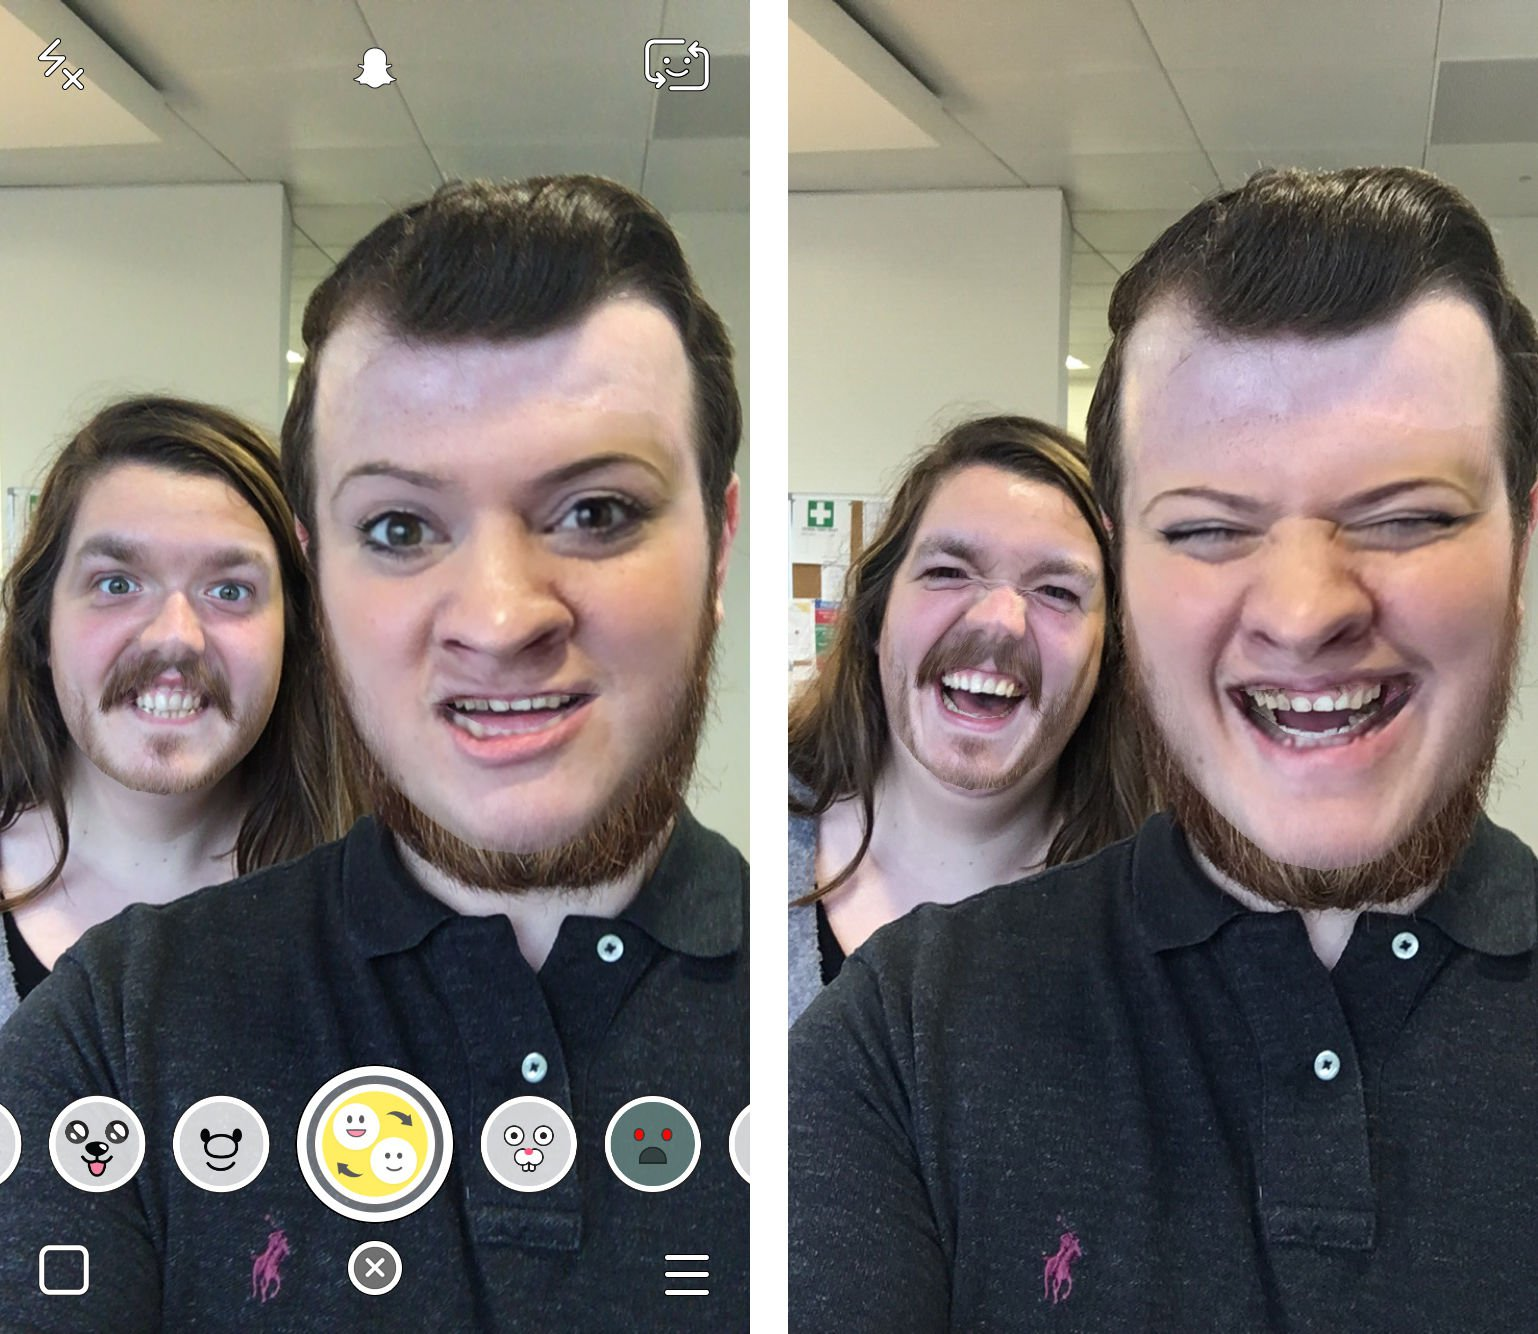 how to face swap snapchat